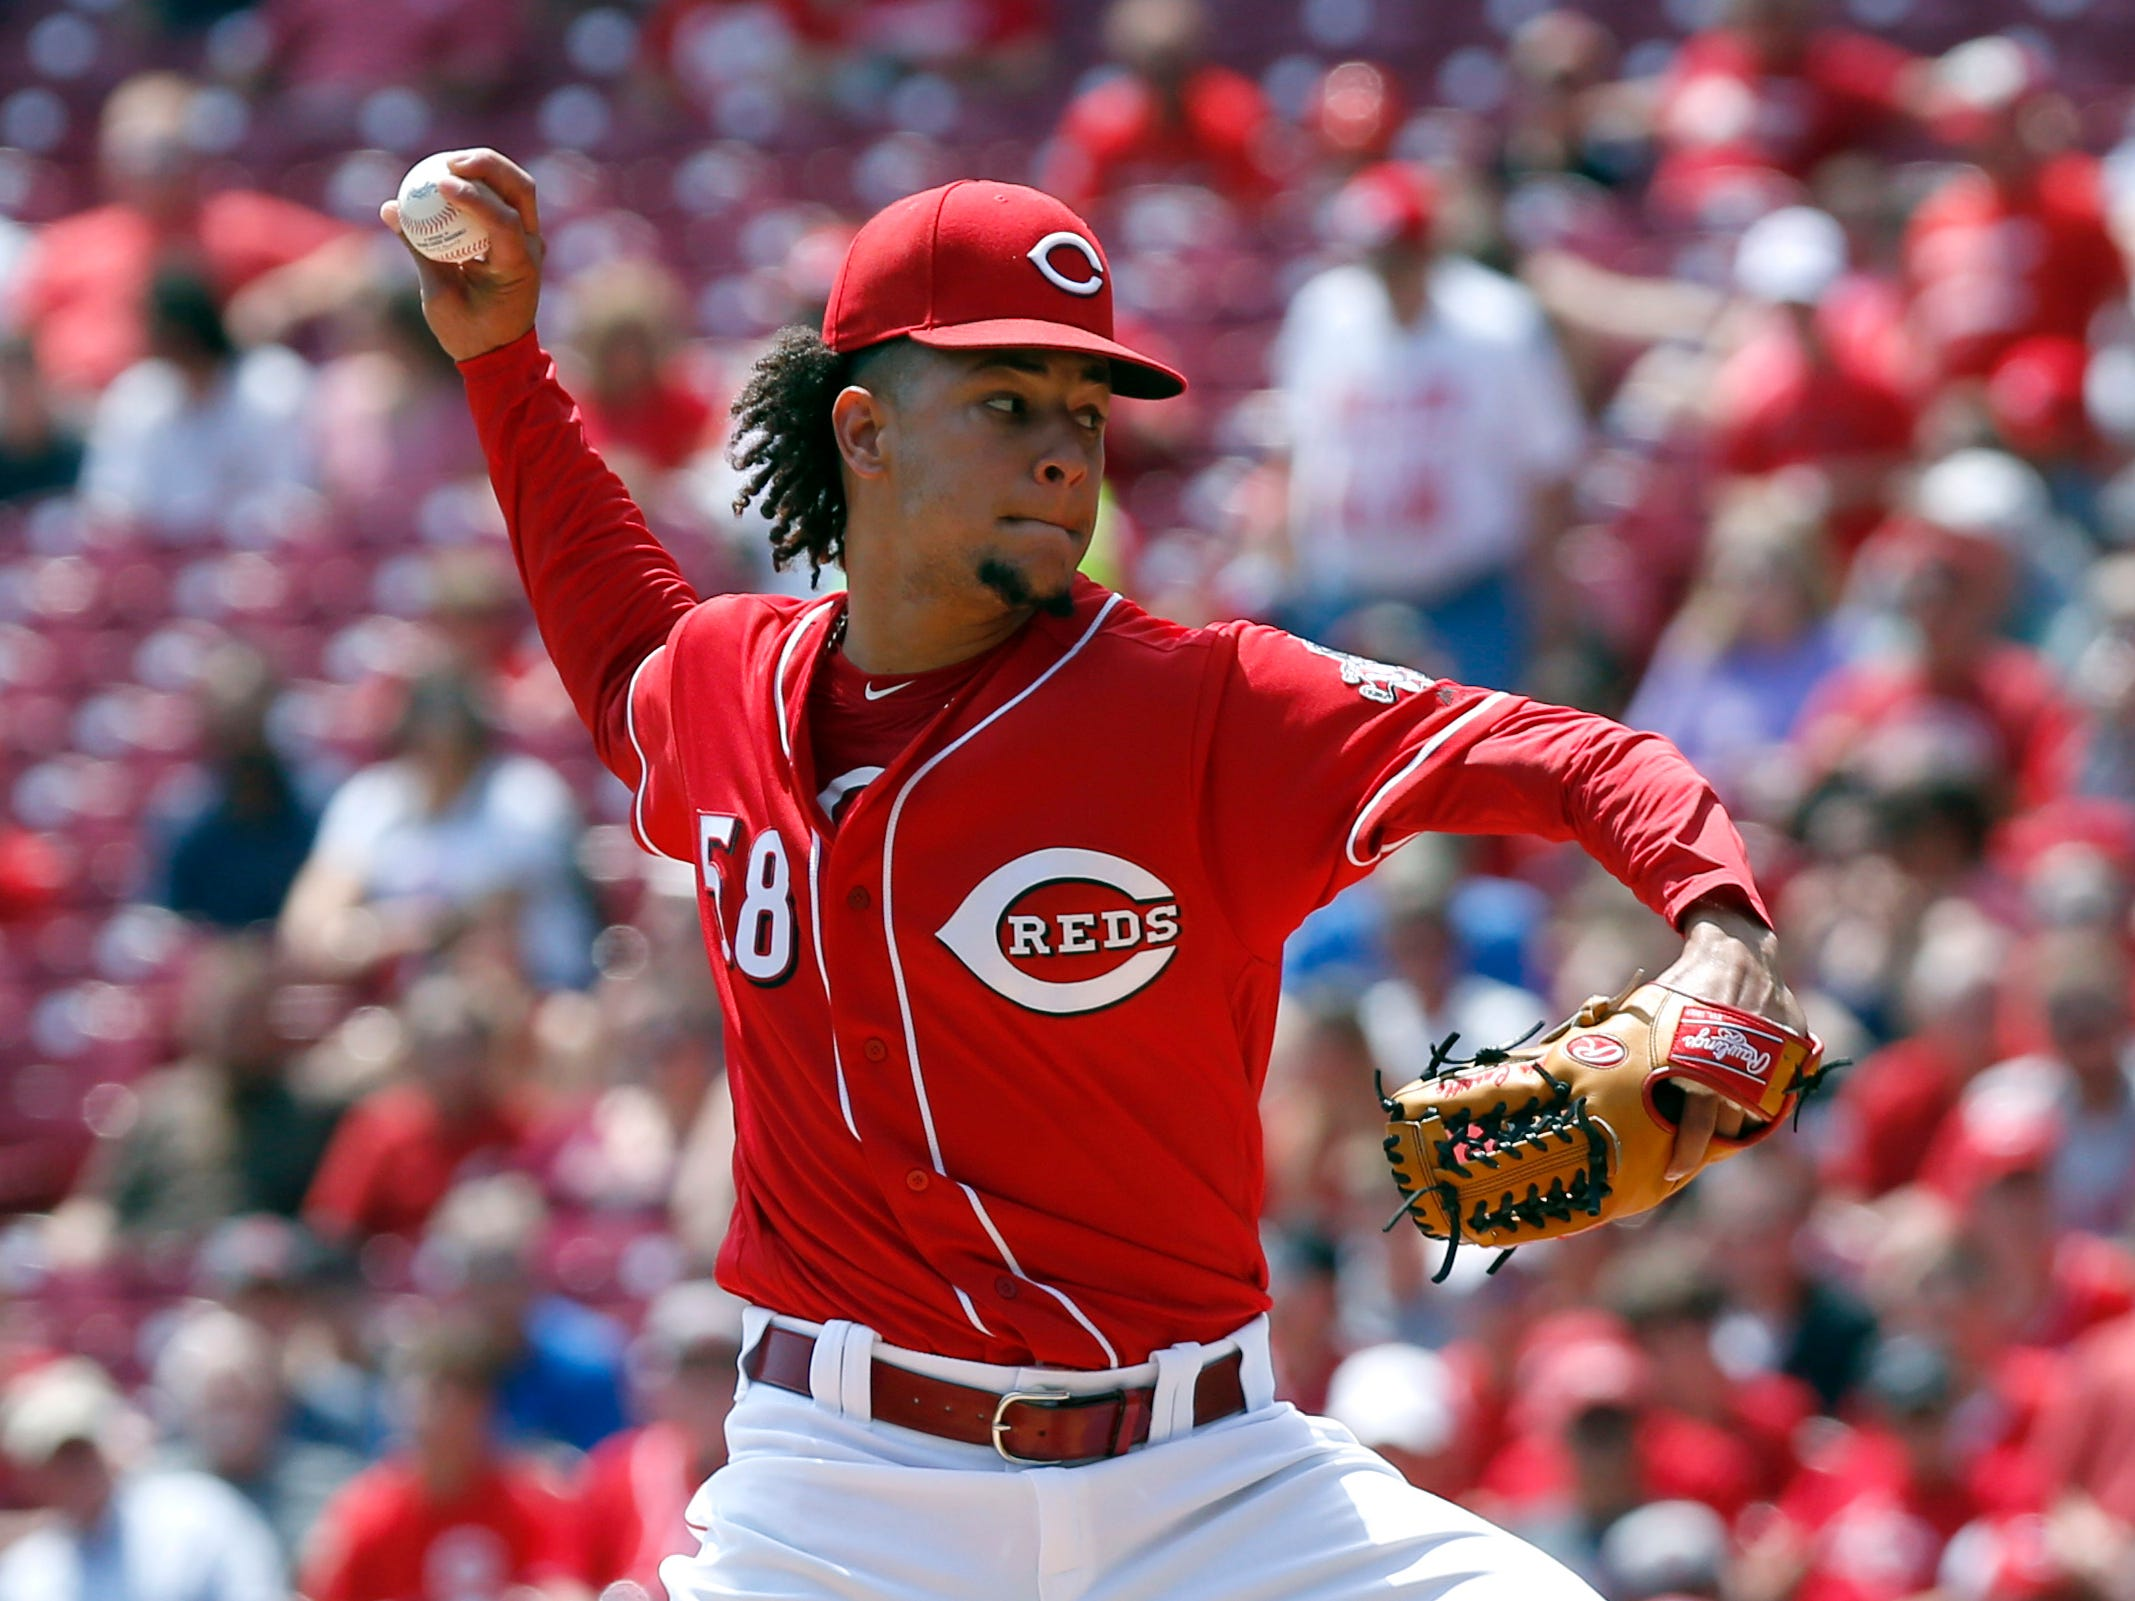 Aug 12, 2018; Cincinnati, OH, USA; Cincinnati Reds starting pitcher Luis Castillo (58) throws against the Arizona Diamondbacks during the first inning at Great American Ball Park. Mandatory Credit: David Kohl-USA TODAY Sports